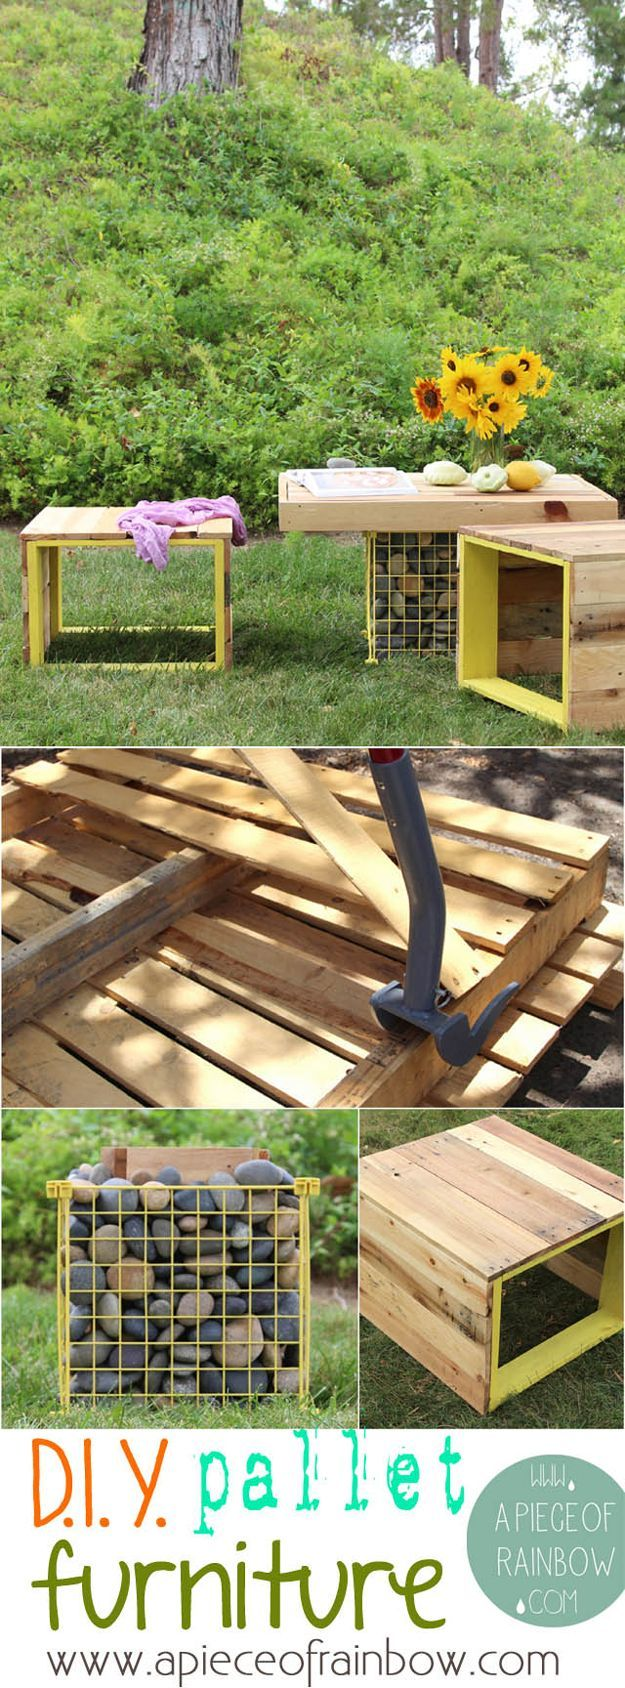 Diy pallet patio furniture instructions - Outdoor Pallet Projects For Diy Furniture